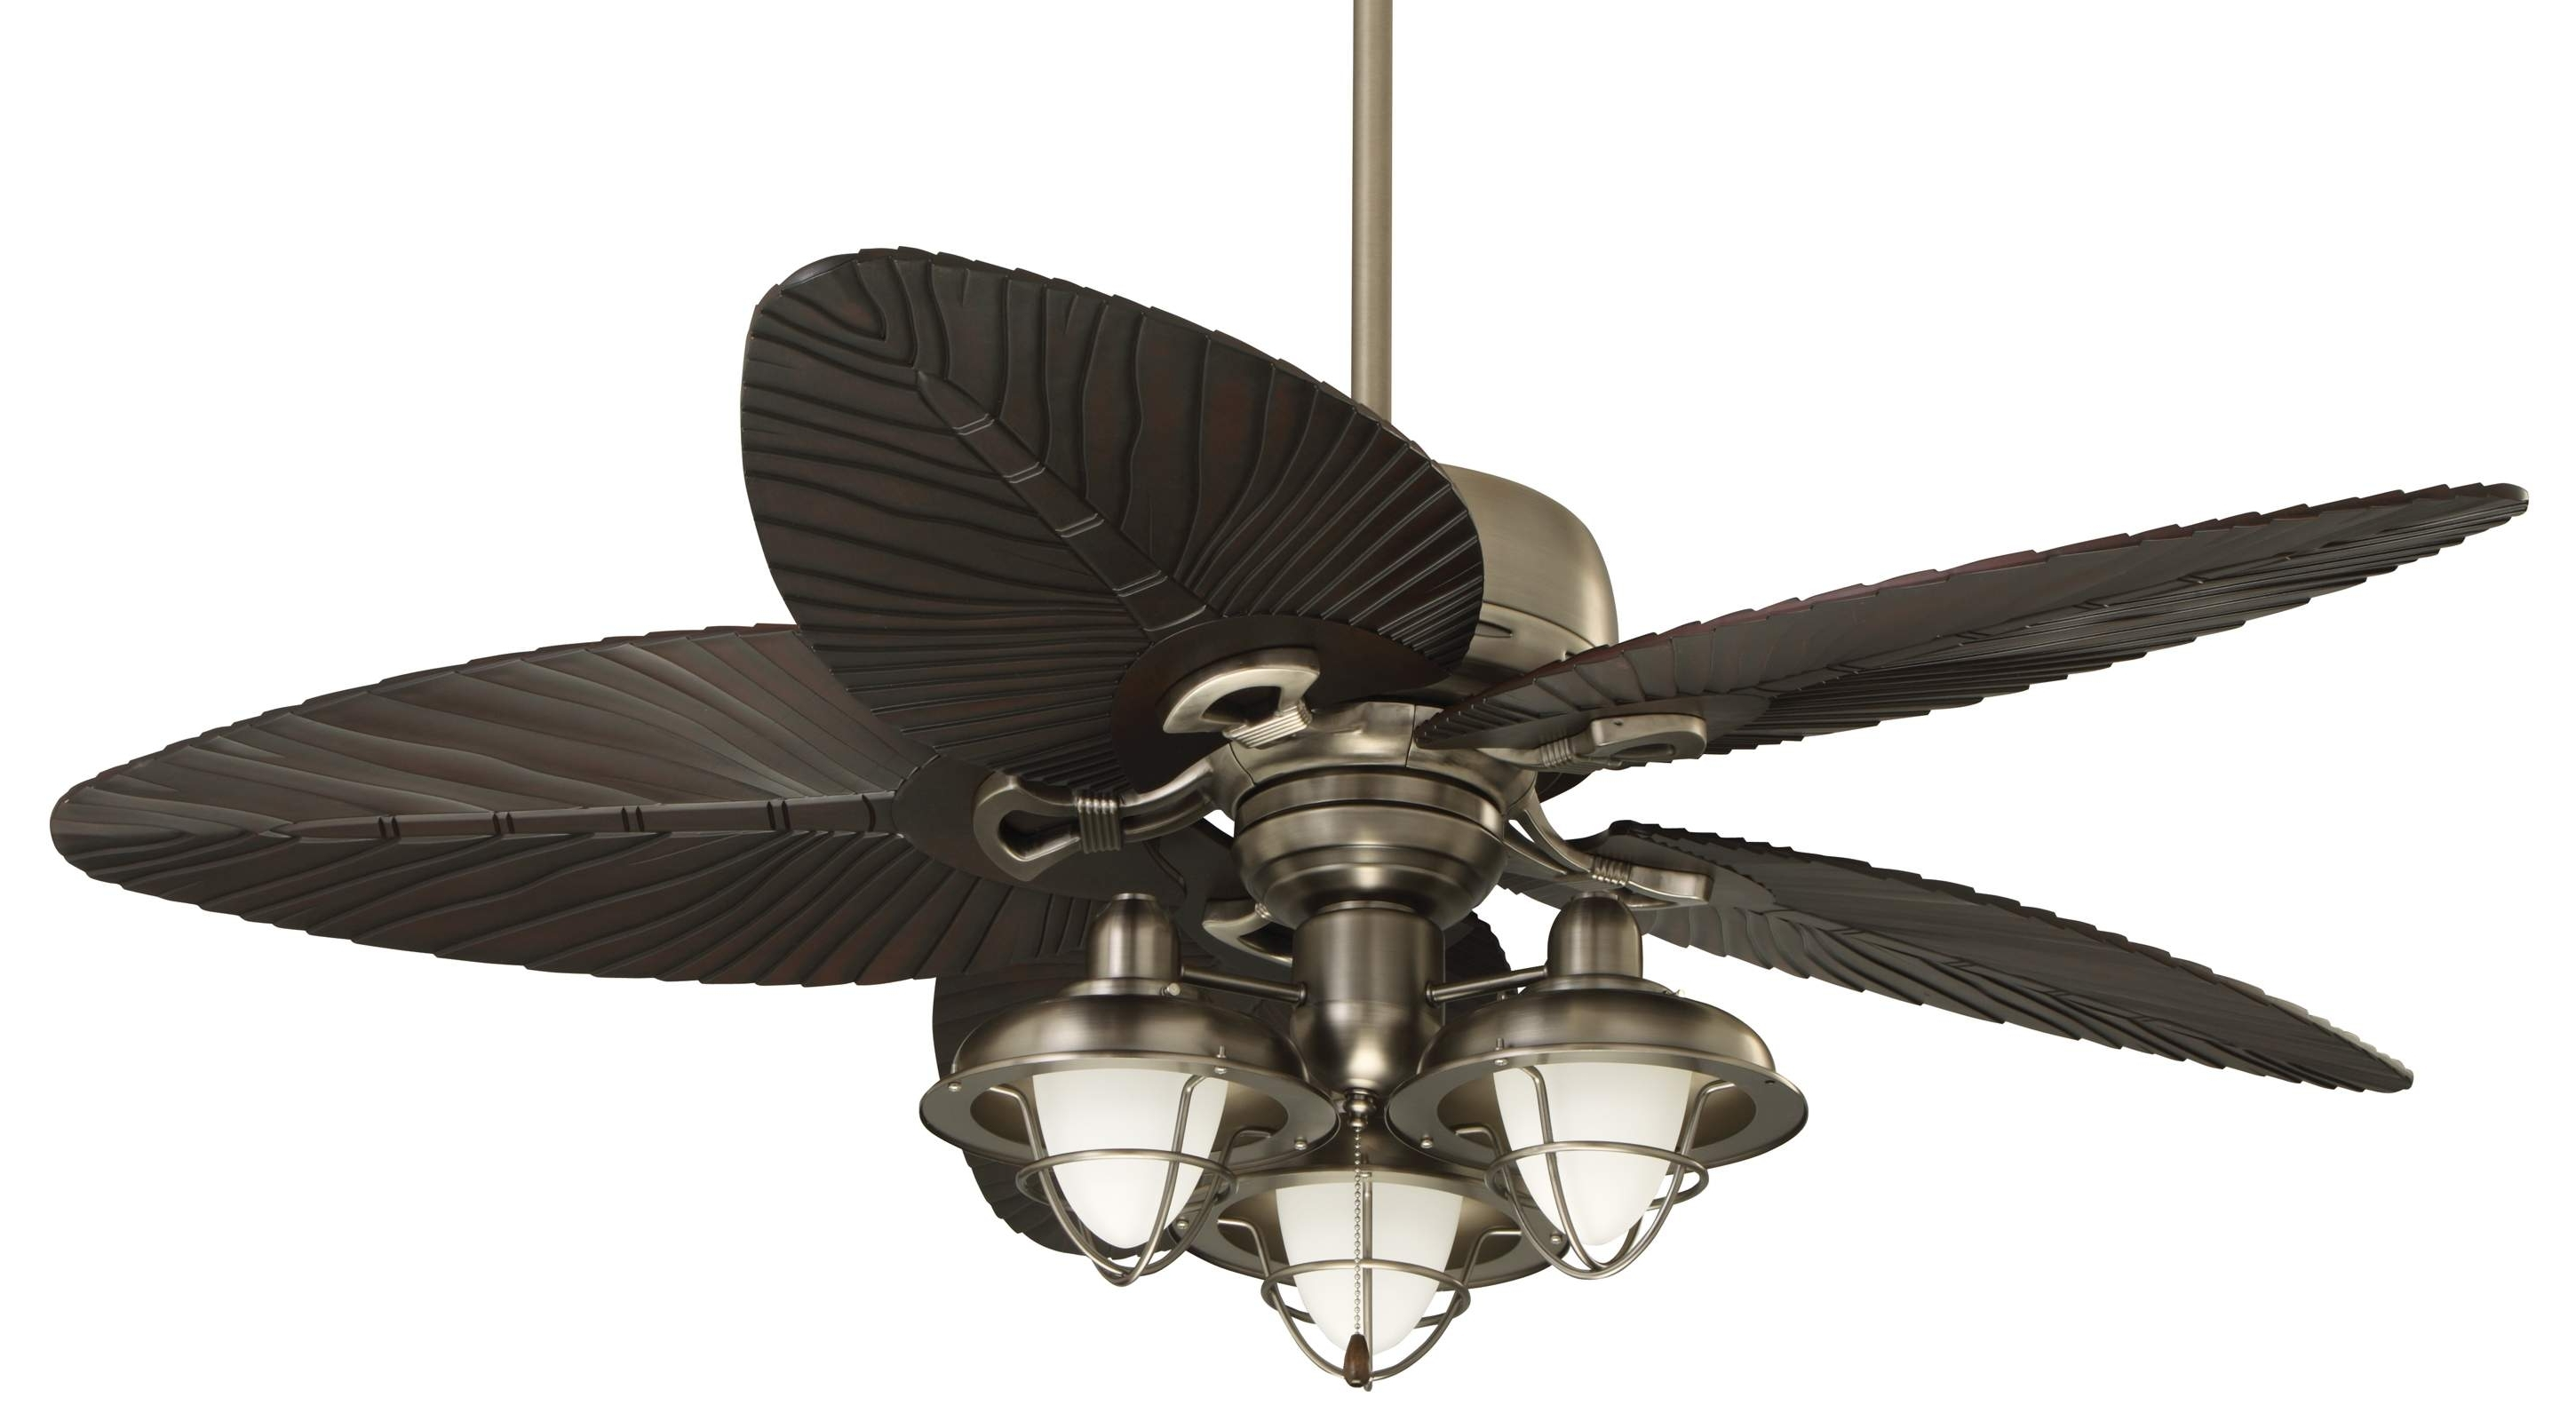 Latest Outdoor Ceiling Fans With Leaf Blades With Regard To Decor: Bring An Island Look Into Your Home With Cool Ceiling Fan (View 5 of 20)